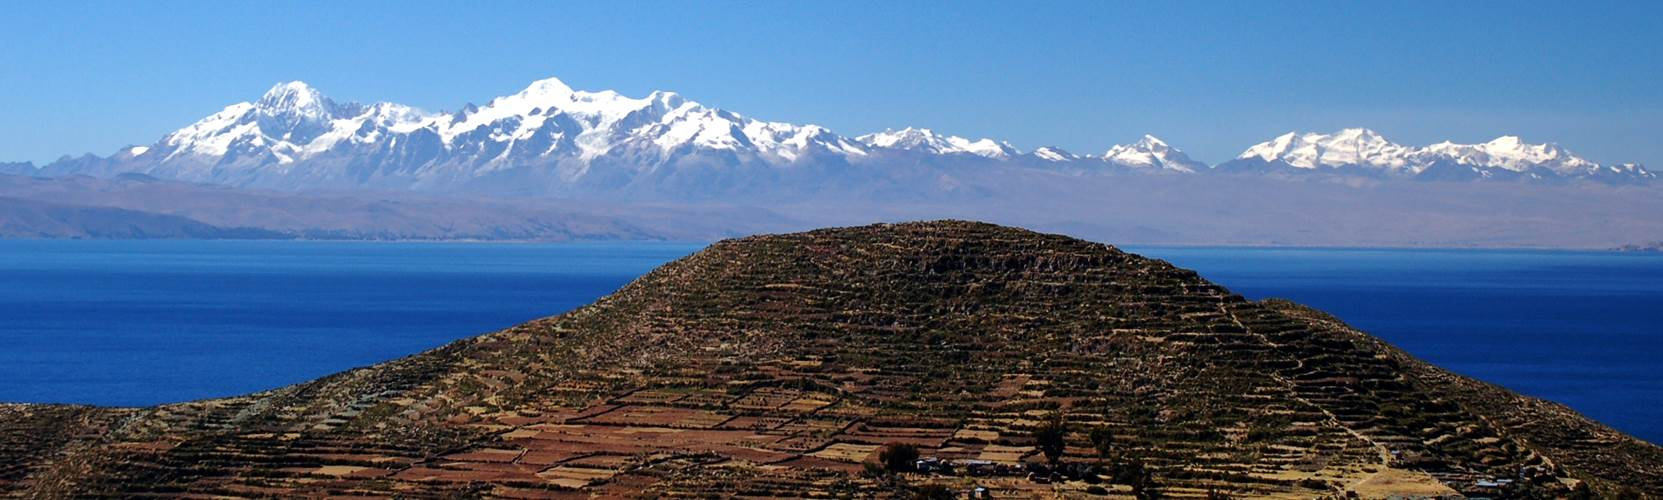 Cordillera Real Central Bolivia, Peaks in the Andes